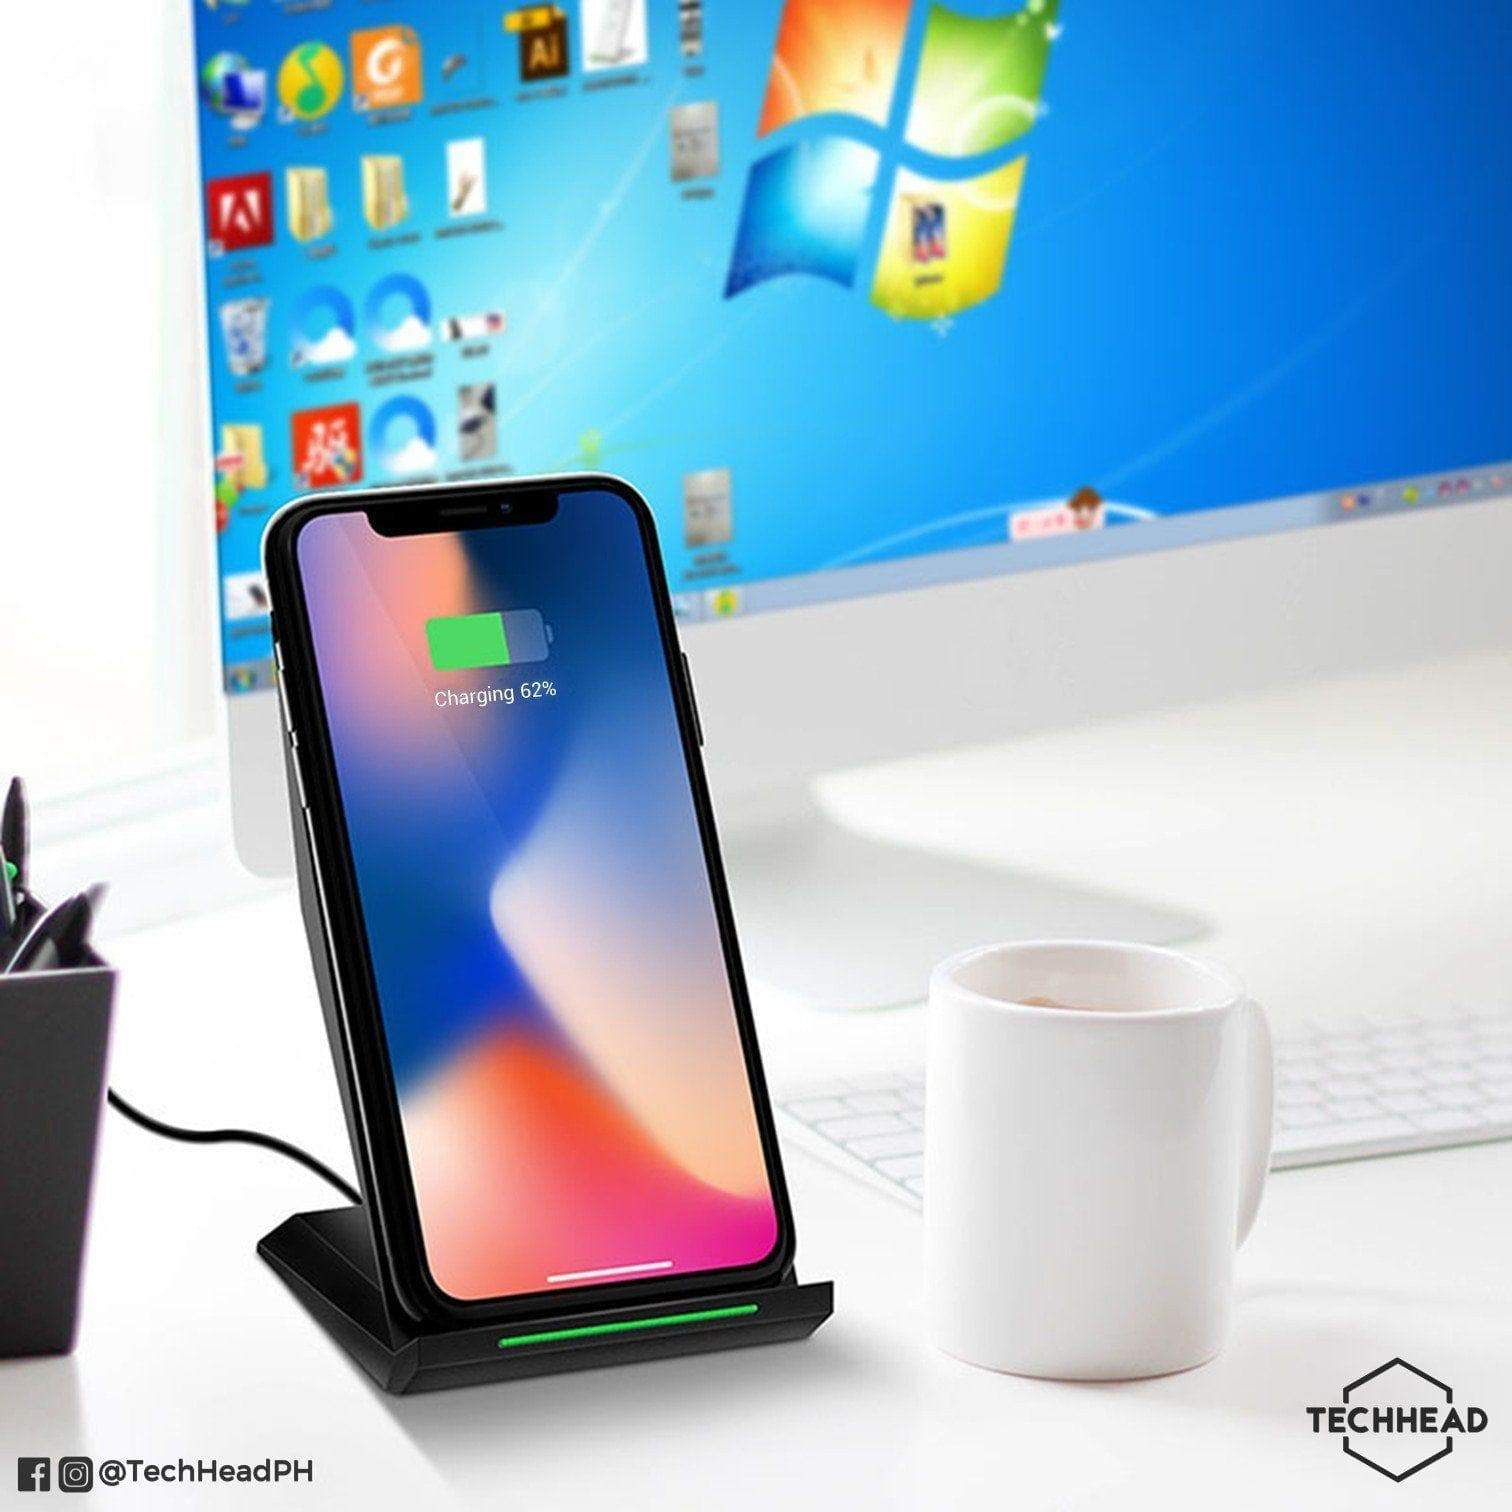 TechHeadPH Wireless Charger URBO 10W Fast Wireless Charger (Recommended)